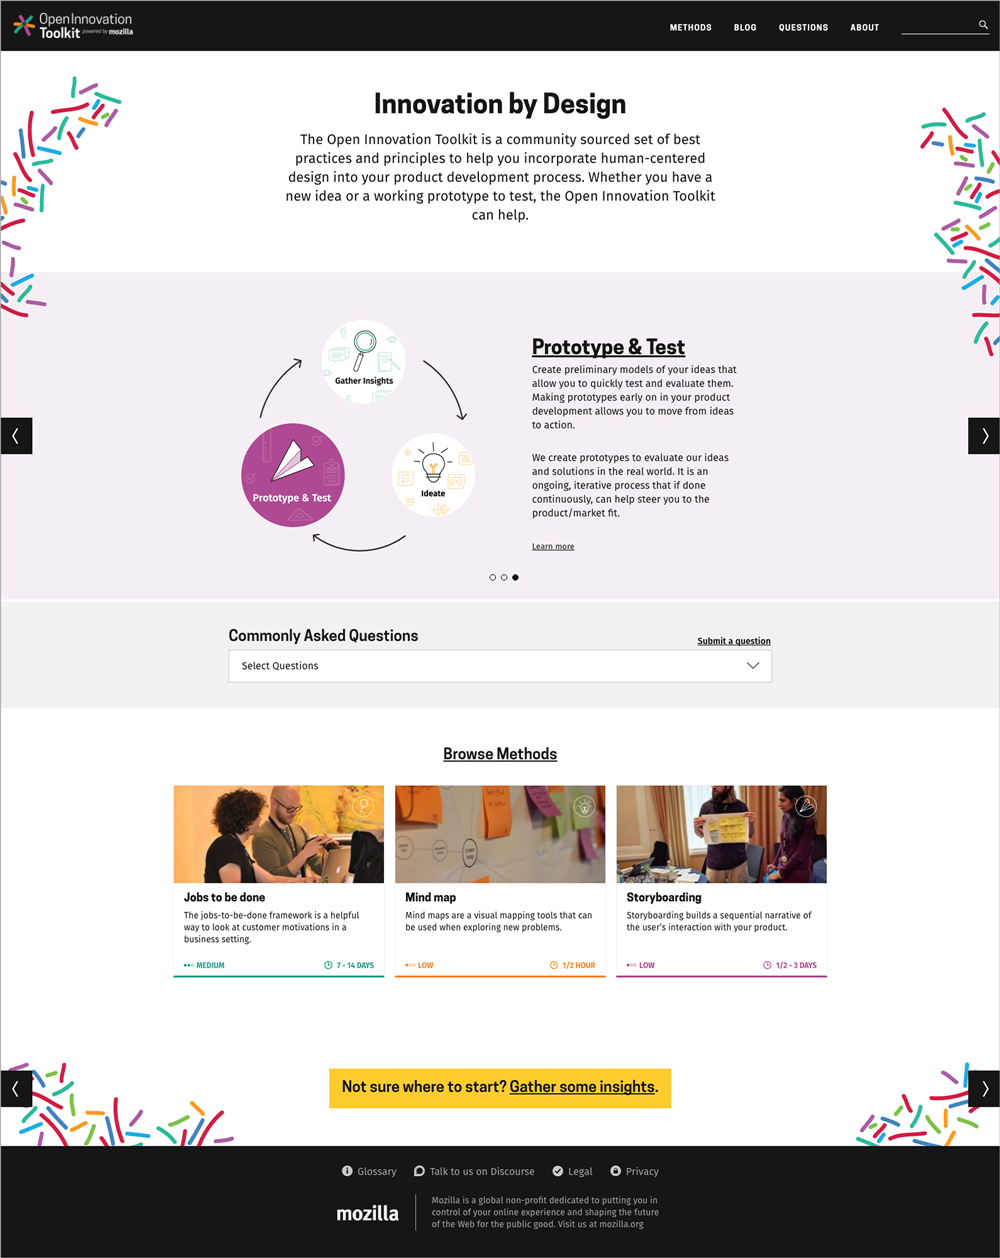 Open Innovation Toolkit - Prototype and Test